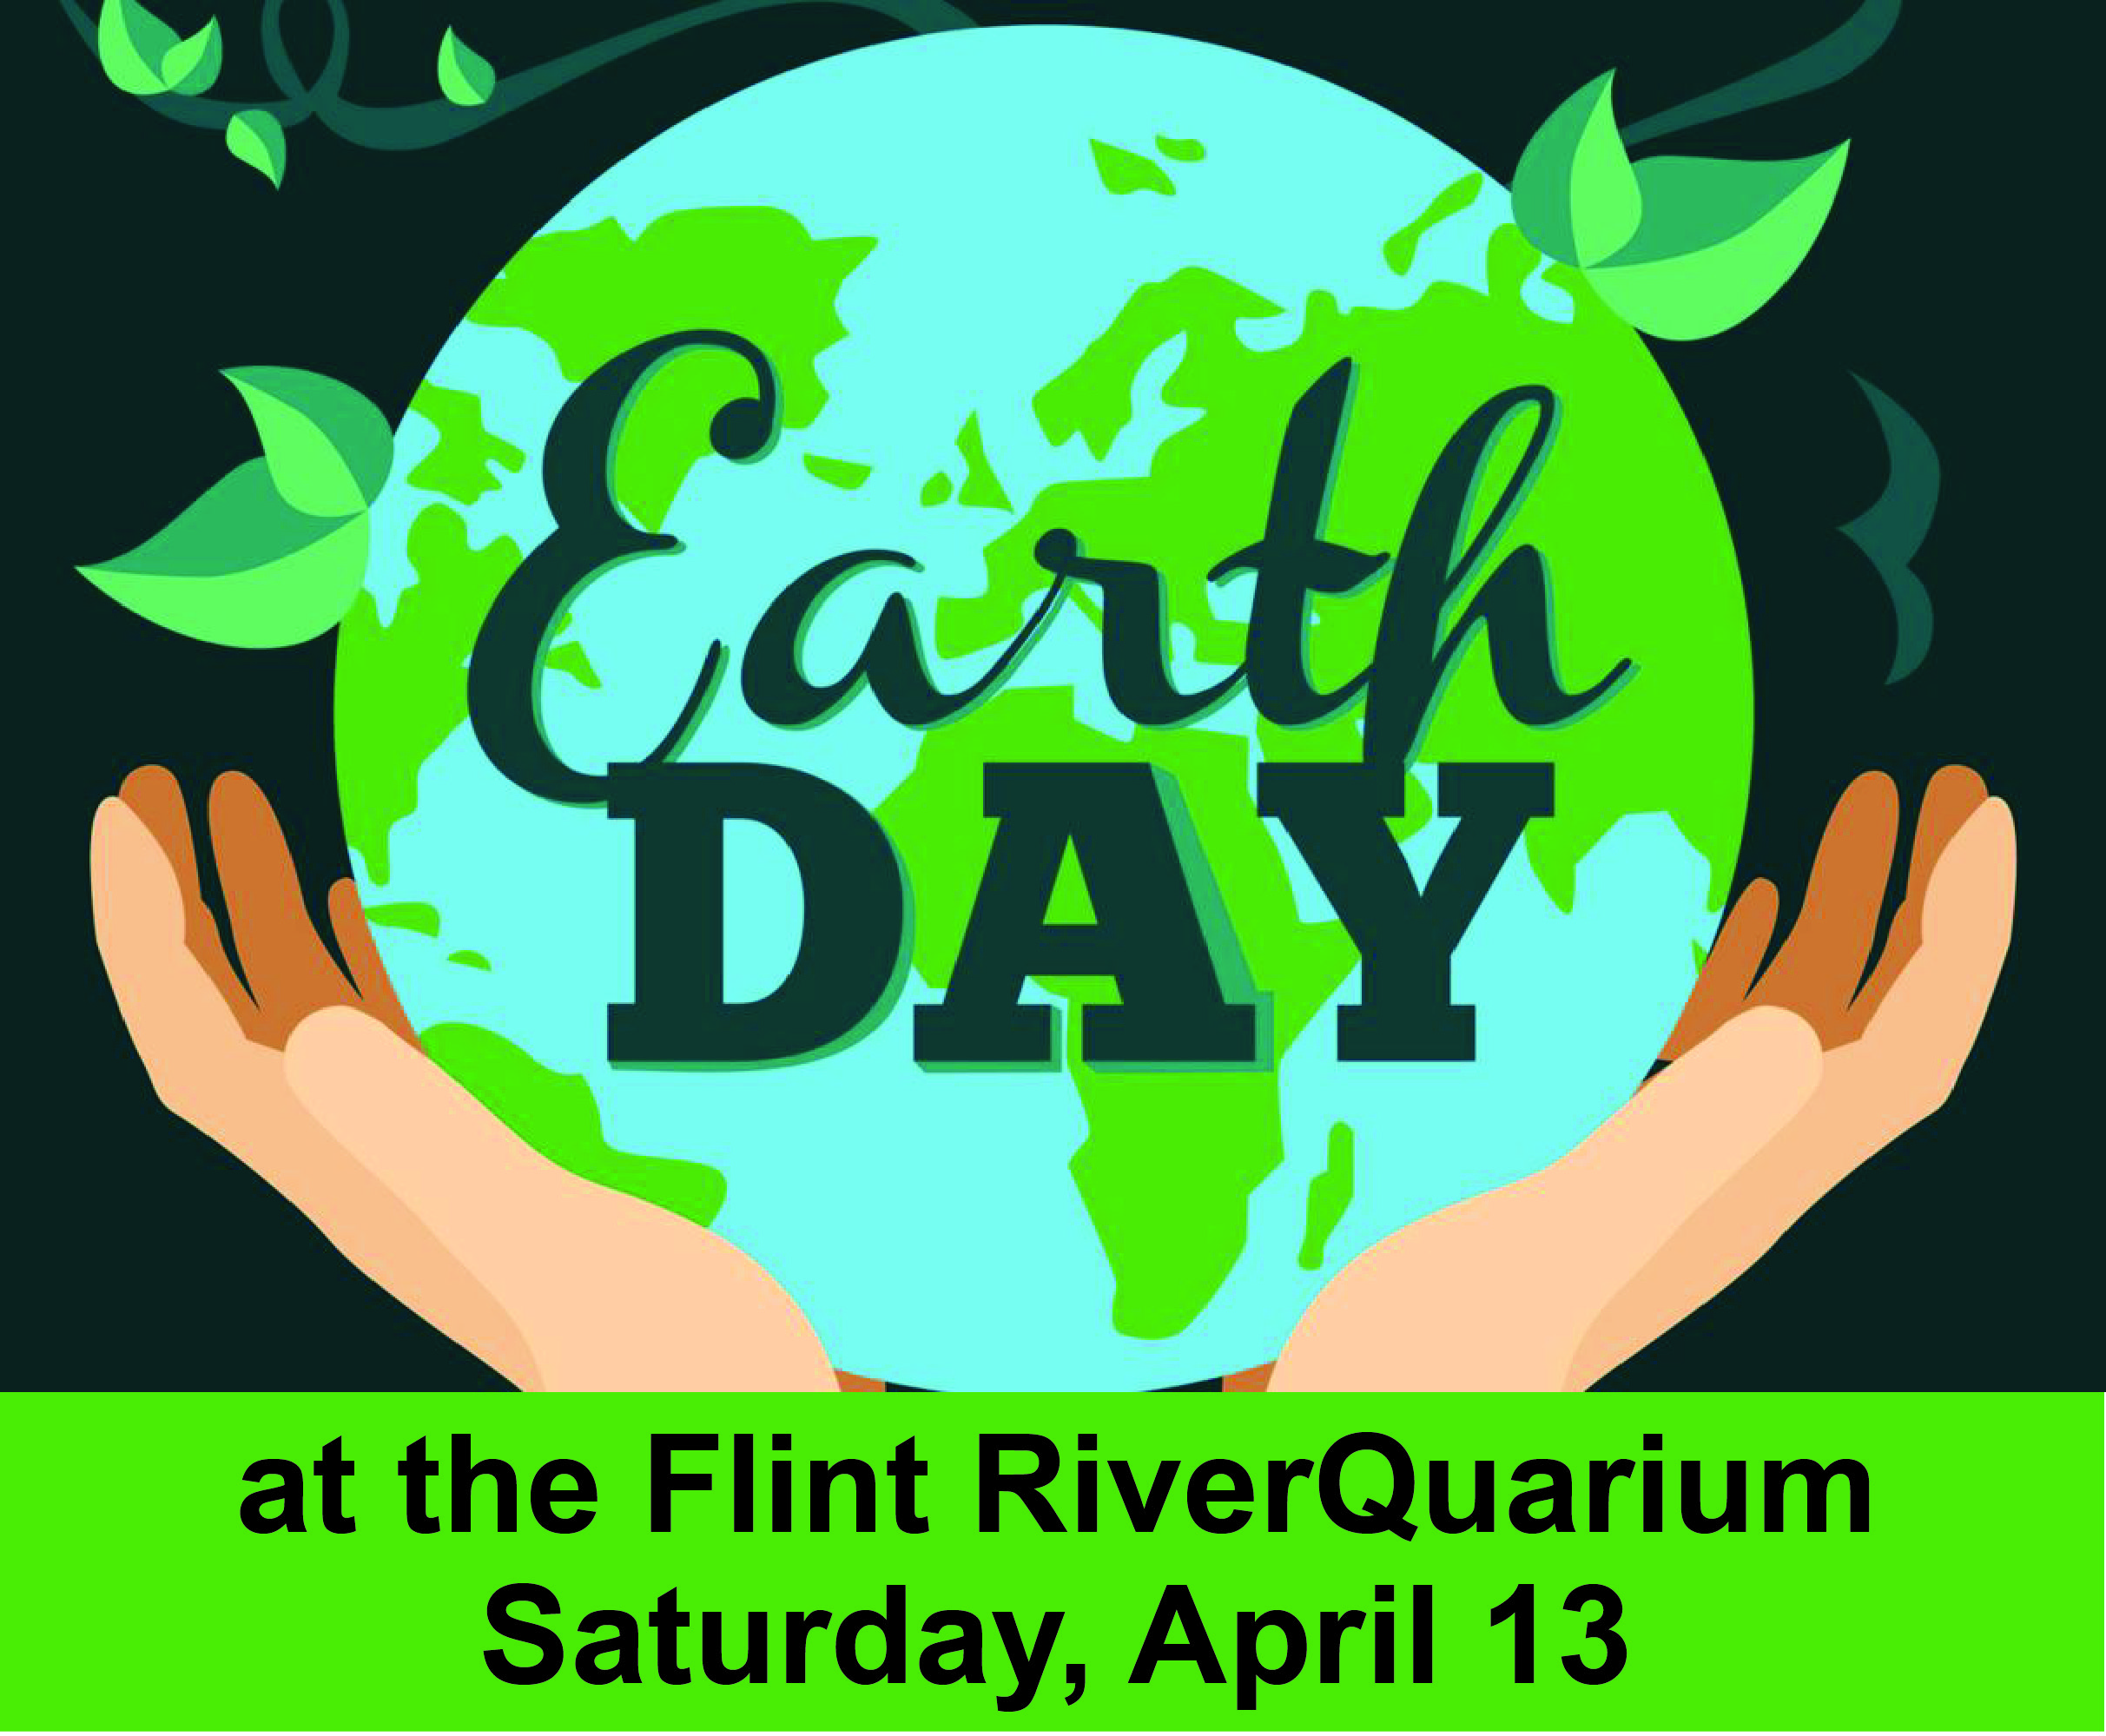 Earth Day Celebration at the Flint RiverQuarium